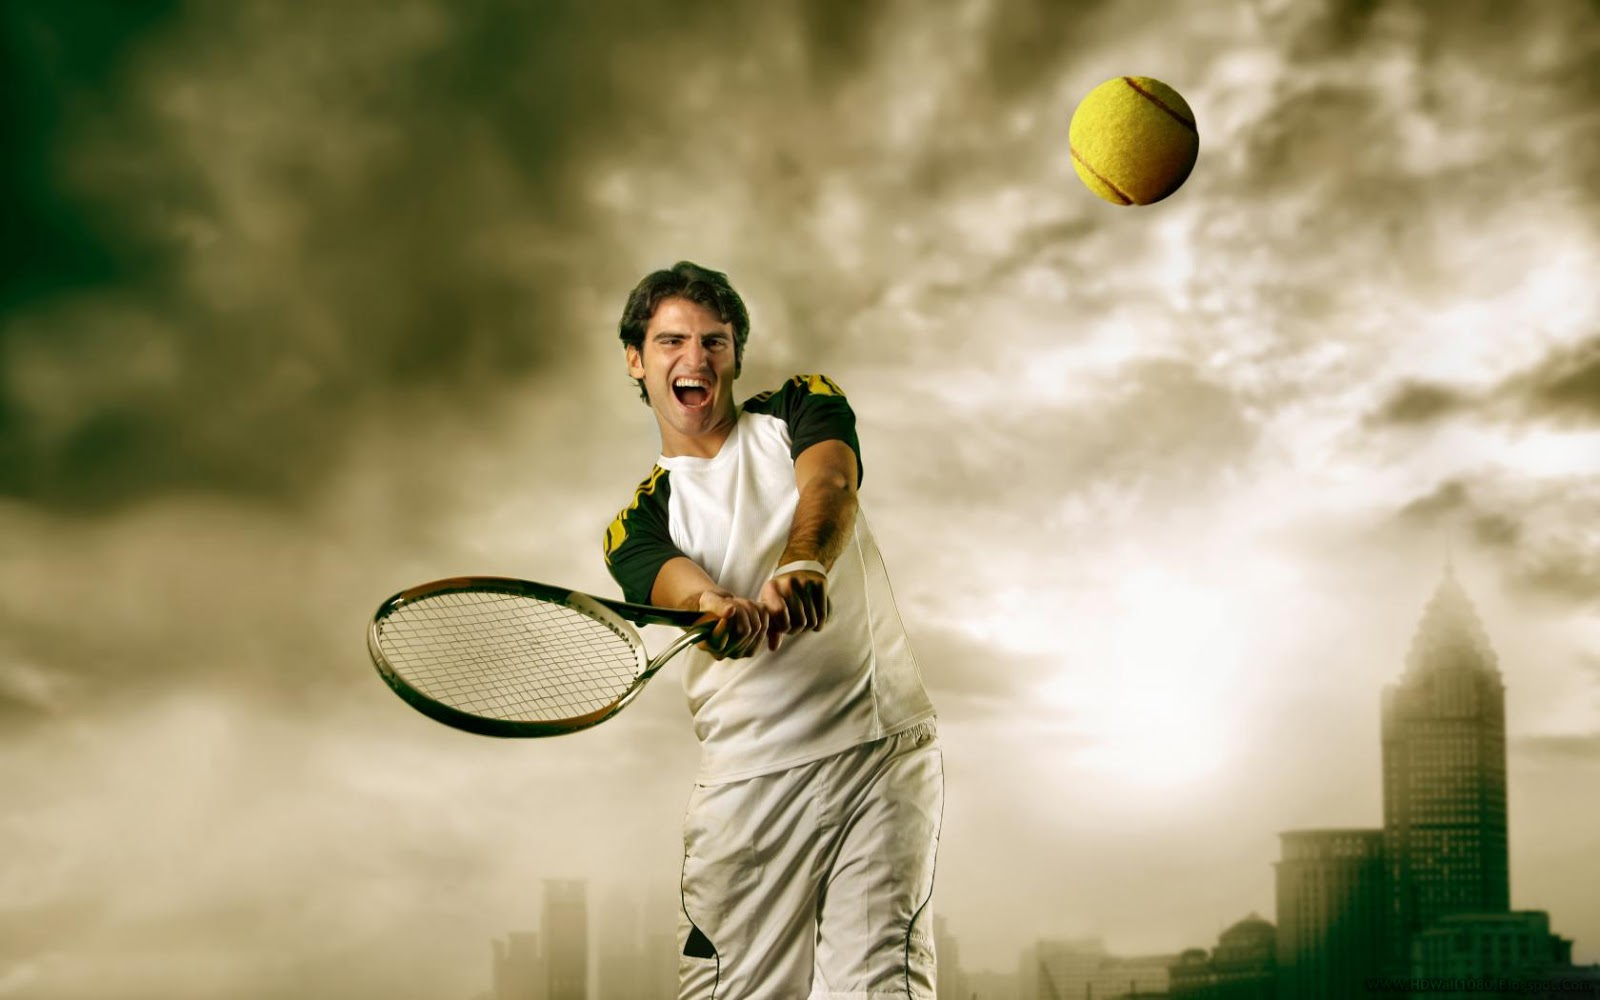 http://2.bp.blogspot.com/-hWqKiVdwY0I/UOB3KaPzUsI/AAAAAAAABxY/s4G717PeJ_A/s1600/Tennis+Racket+And+Ball+HD+Wallpapers.jpg